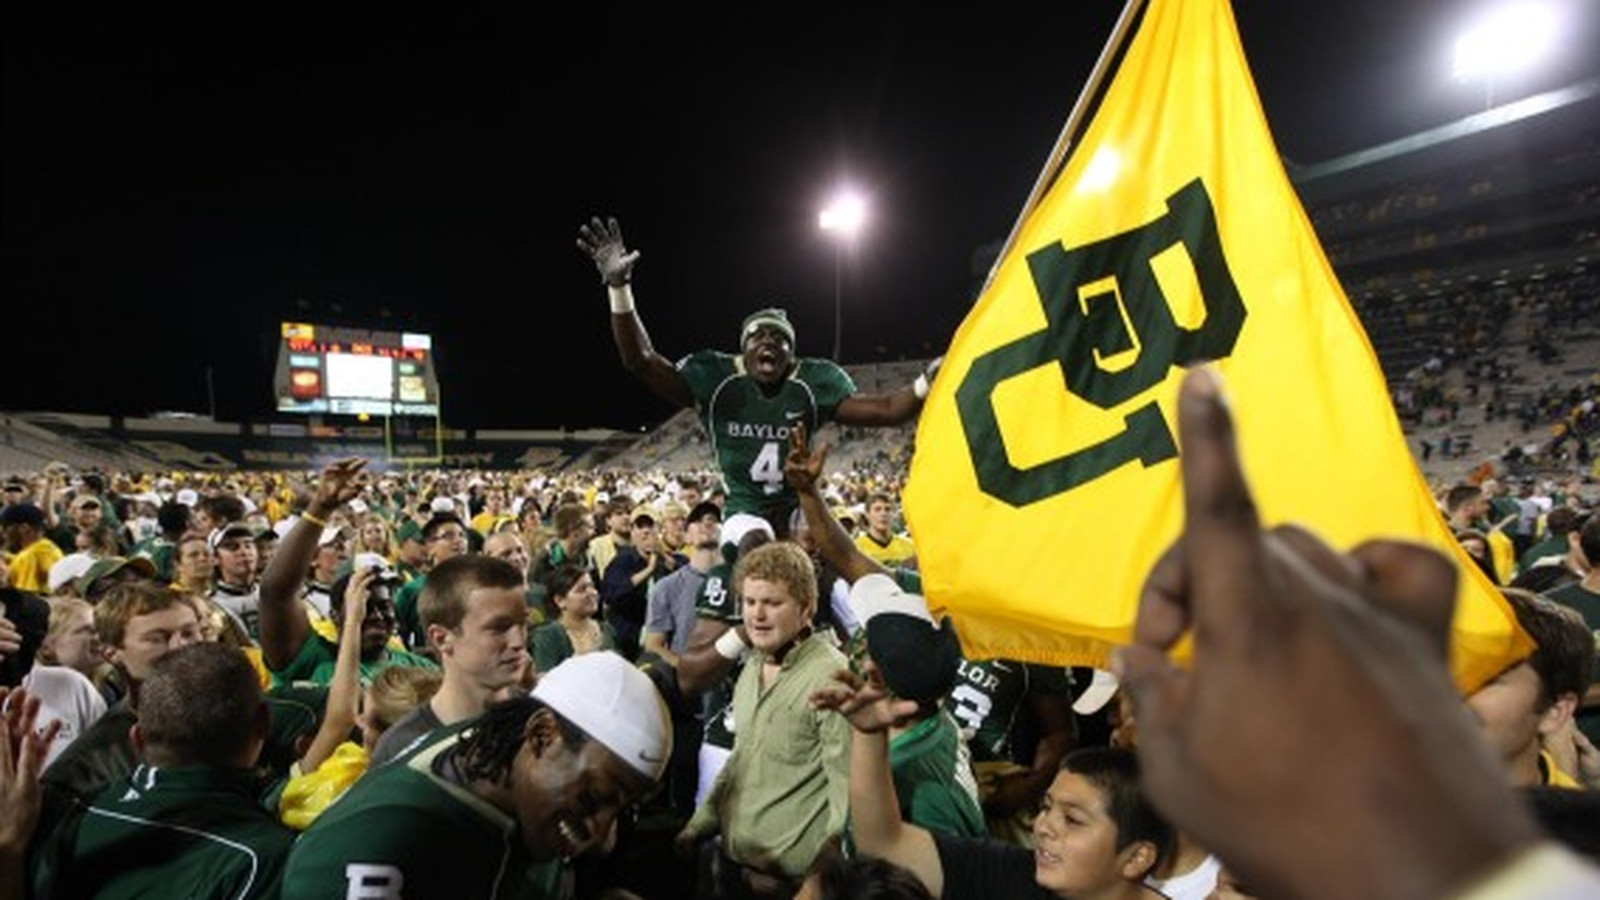 baylor dating Unbridled enthusiasm for all things green and gold the baylor proud blog highlights the great things going on within the baylor university family.